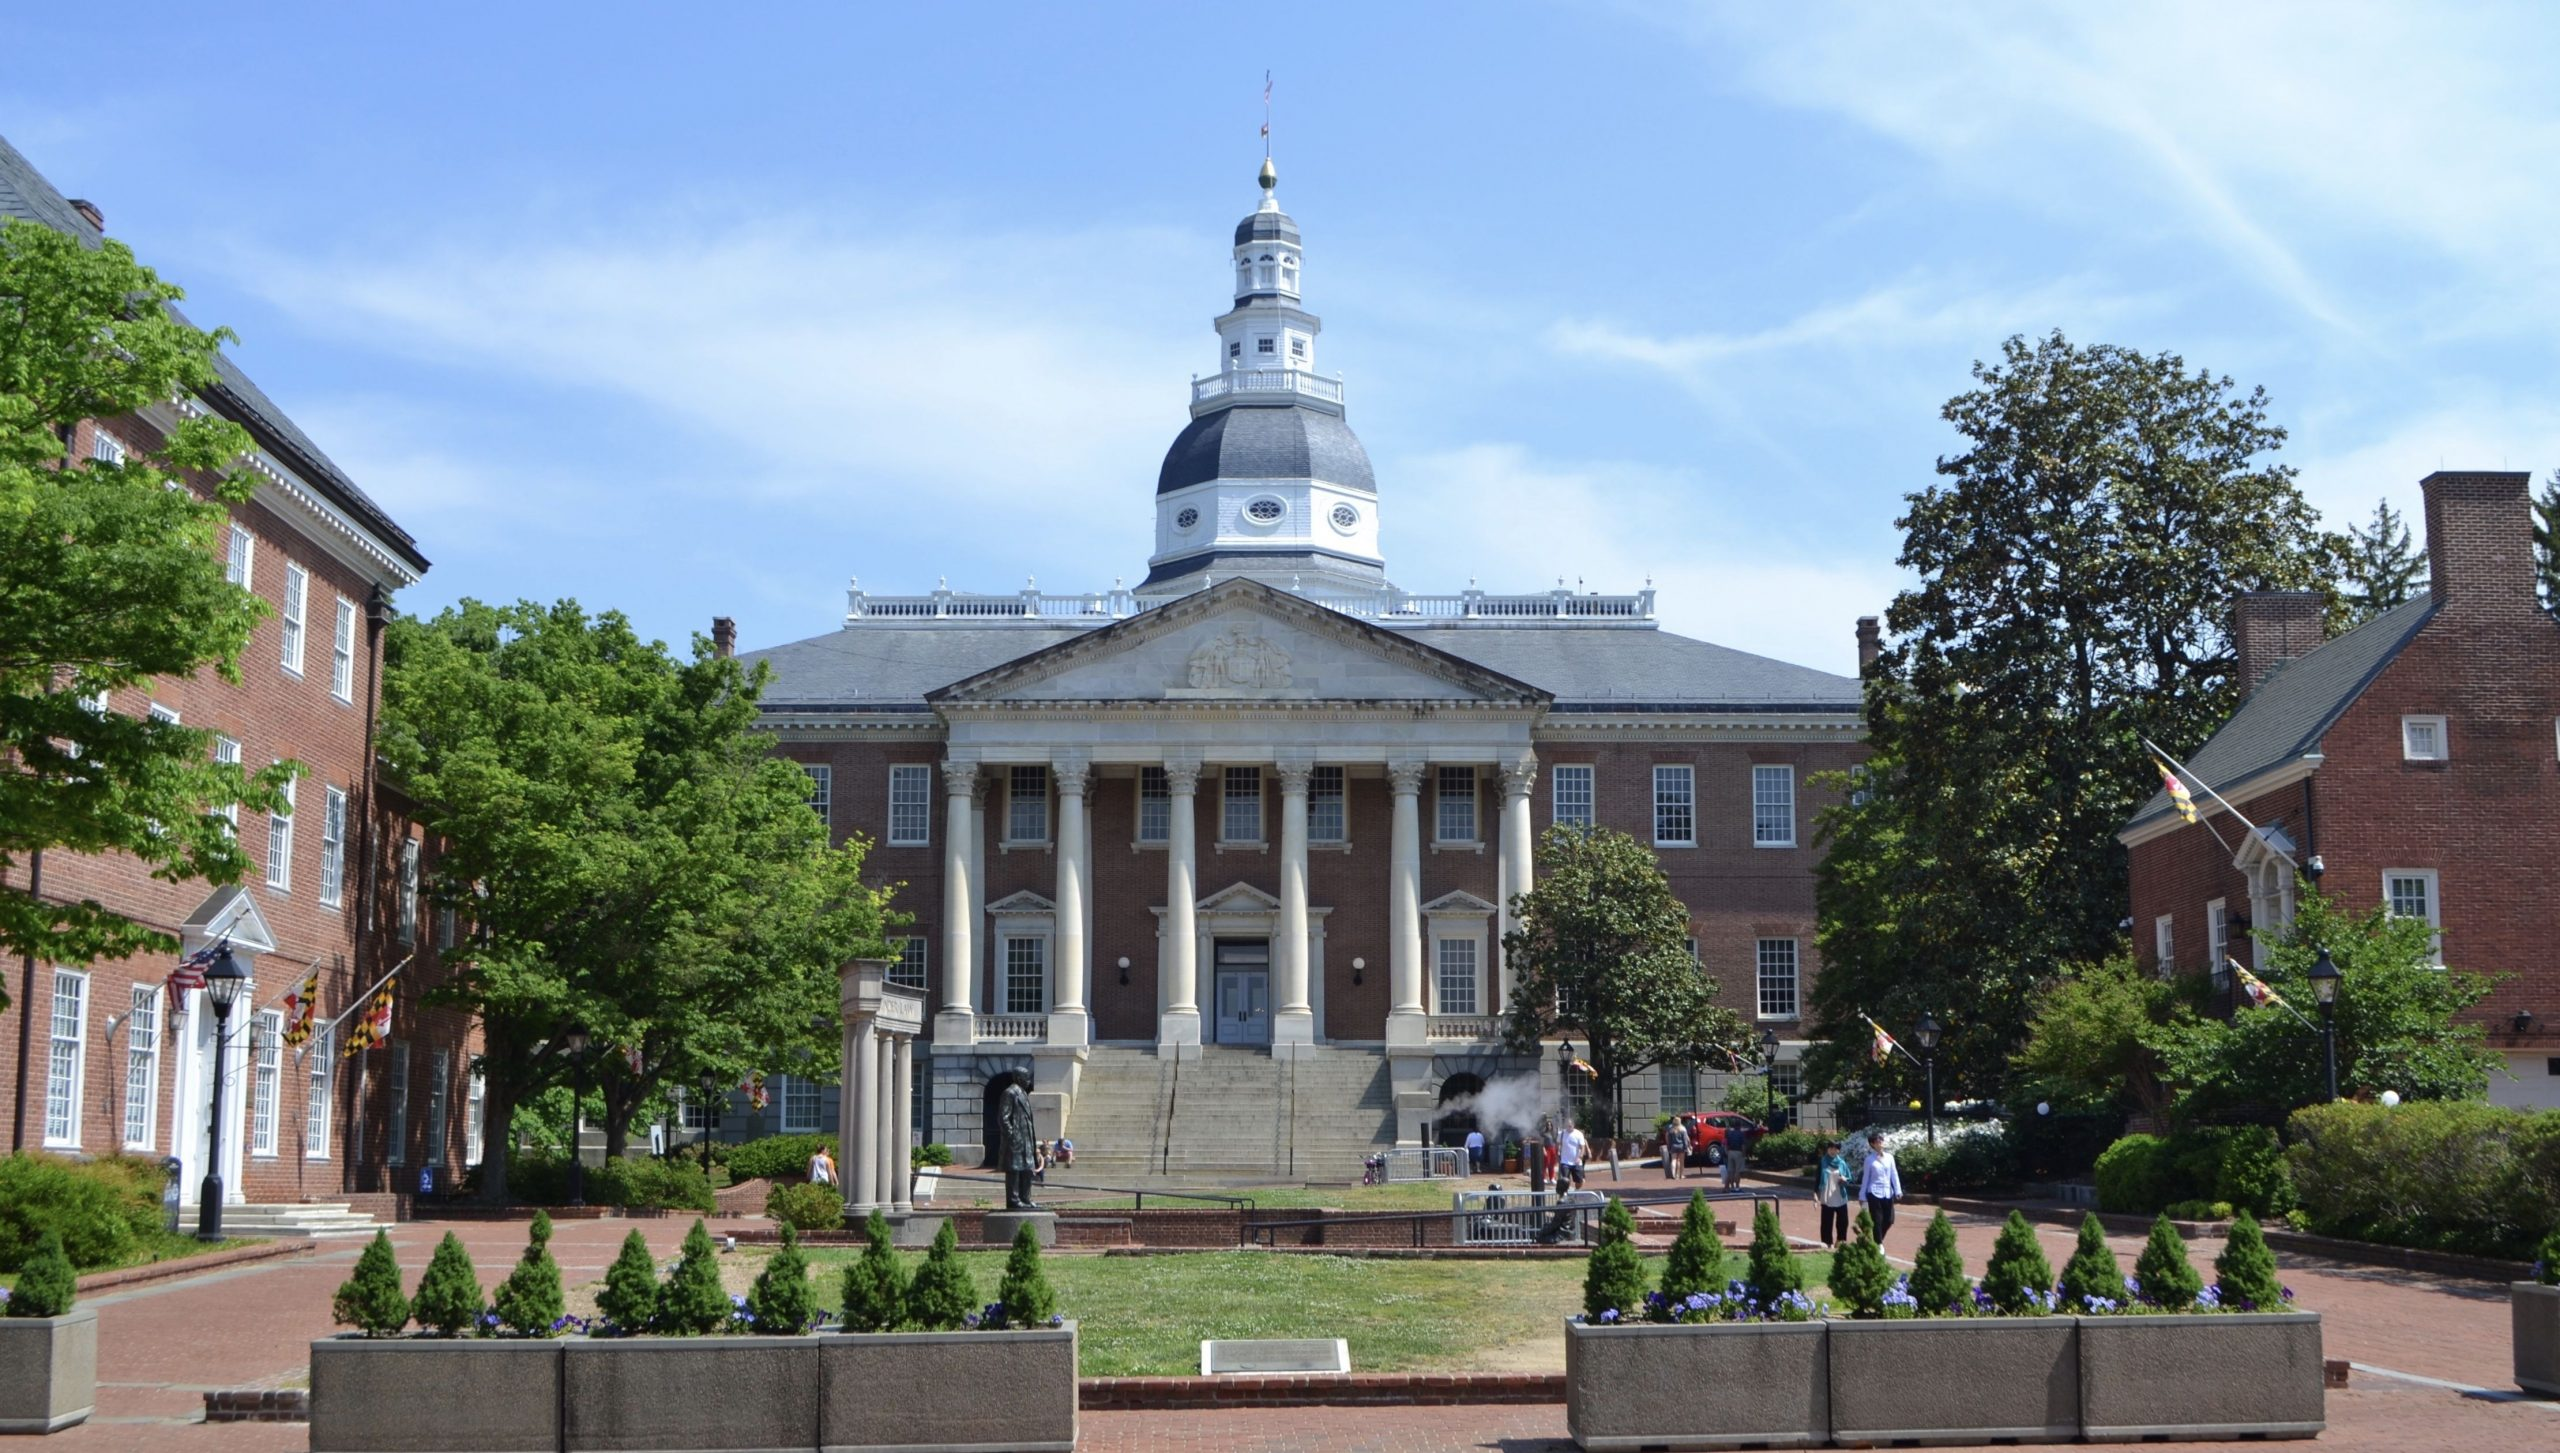 I believe in limited government and the Constitution. The overreach that states and local governments implemented during the pandemic and now continue to do is not acceptable. The Government should be limited to rights outlined in by the federal constitution and at the state level the Maryland state constitution.